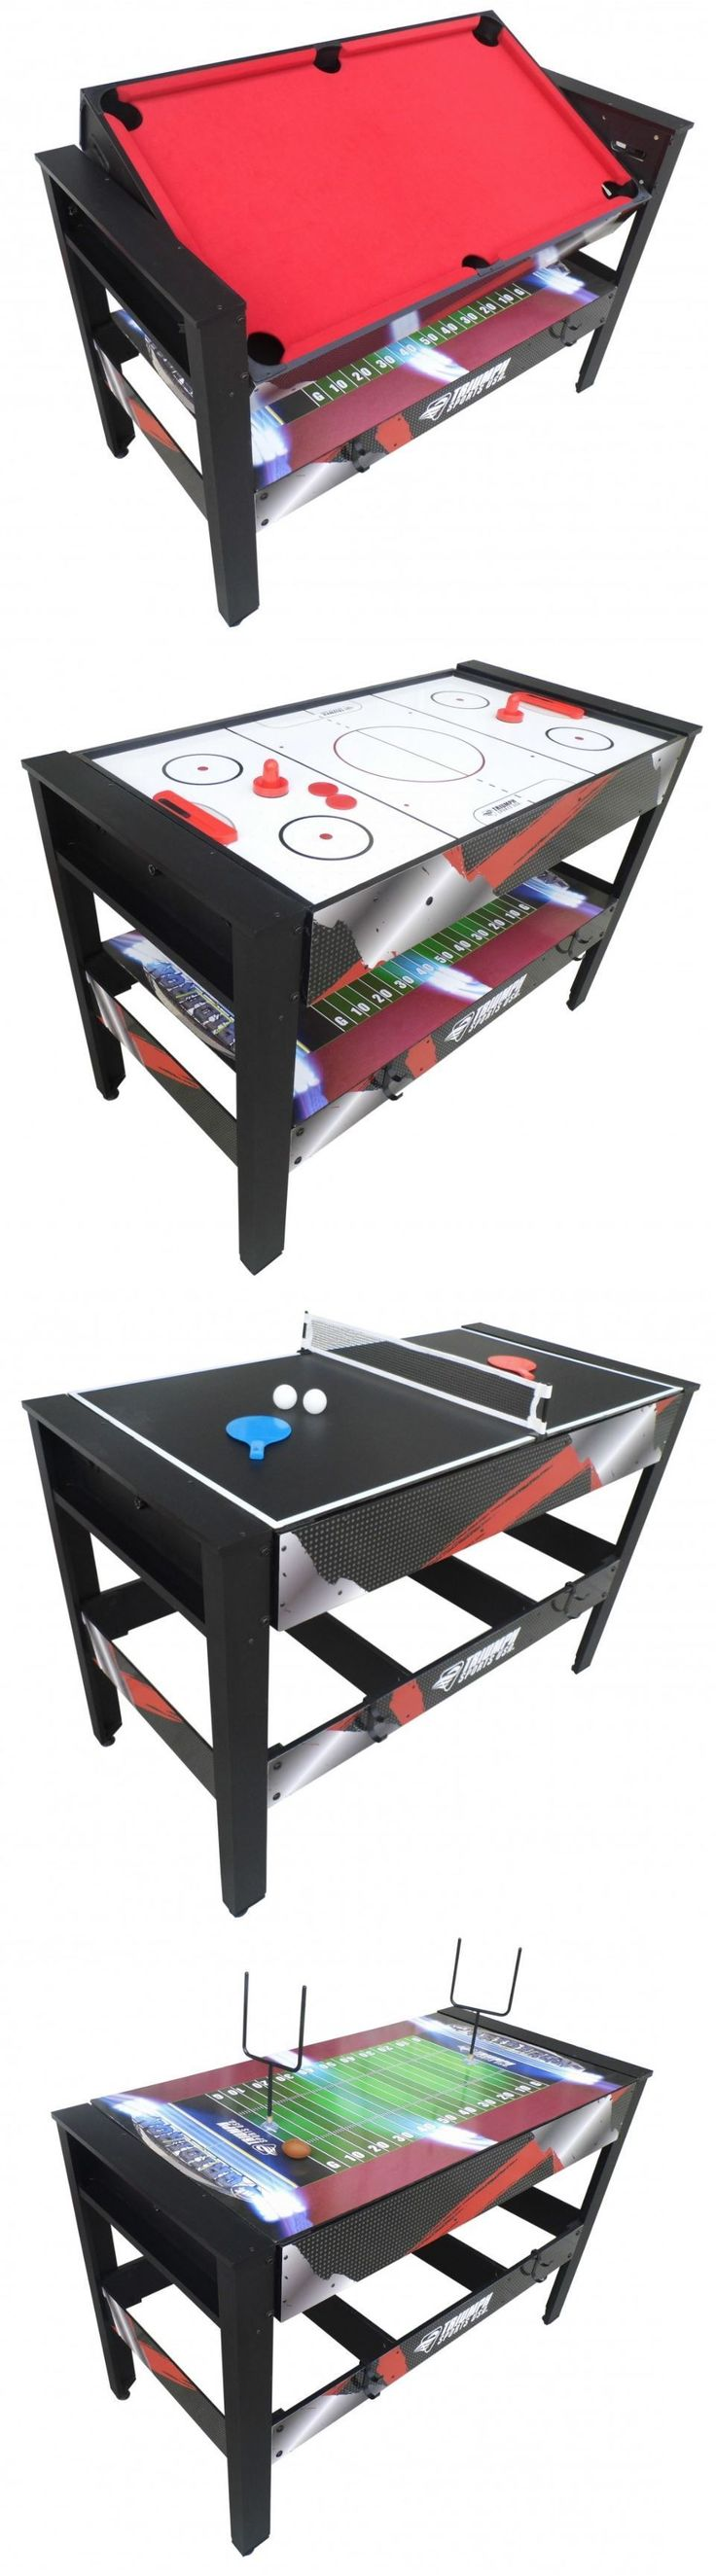 Tables 21213: Game Tables 4 In 1 For Room Ping Pong Air Hockey Pool Football Multi Combination BUY IT NOW ONLY: $229.99